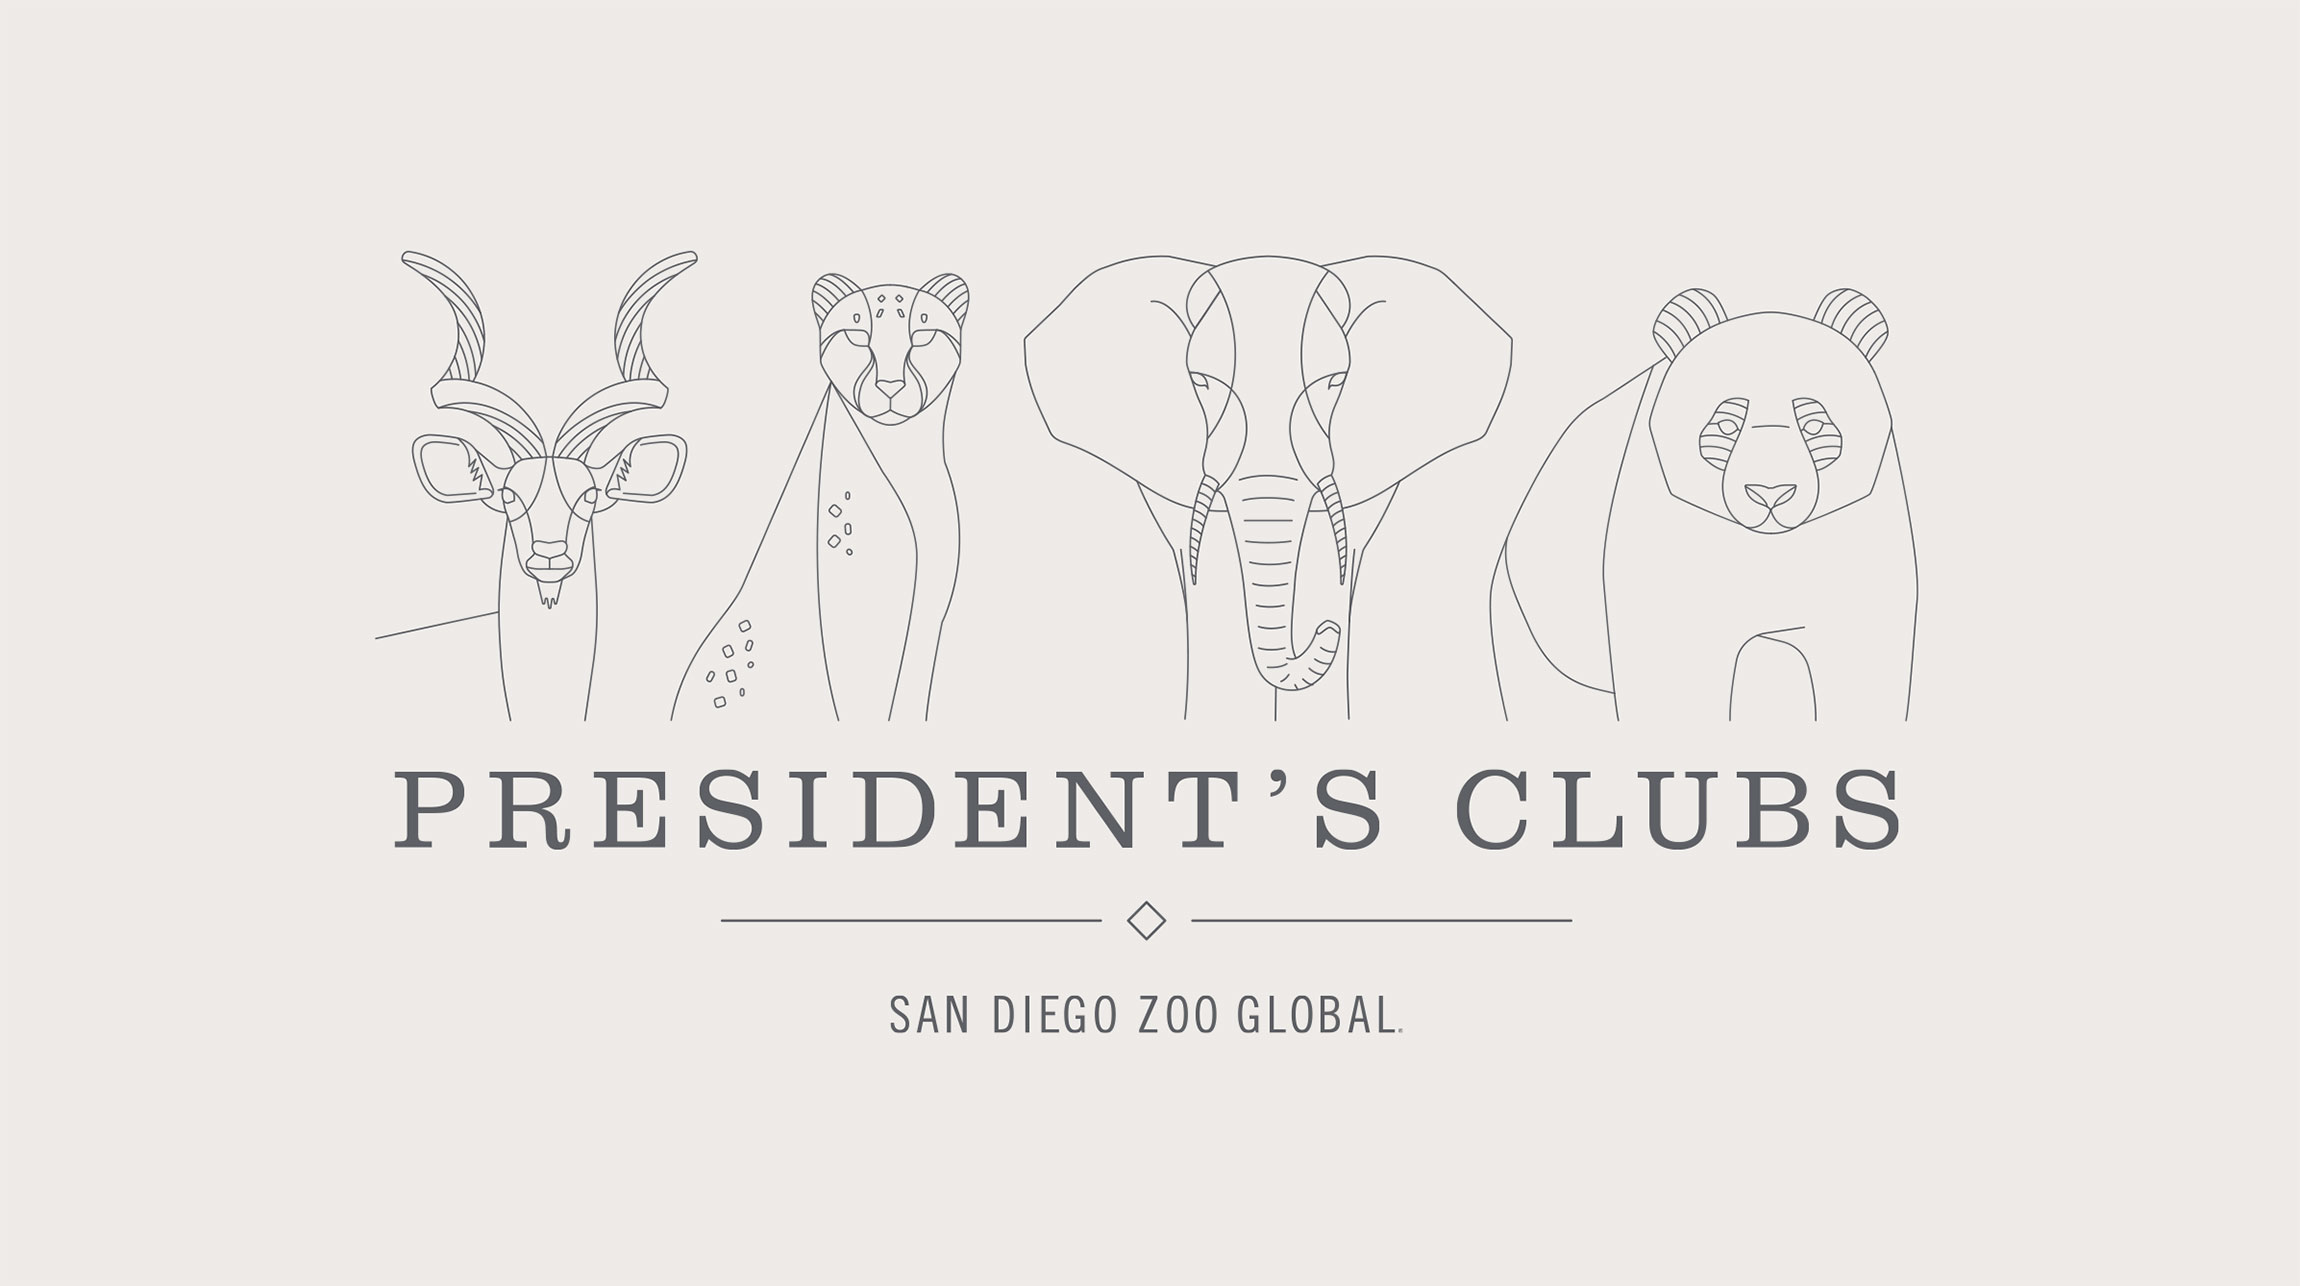 San Diego Zoo President's Clubs Redesign